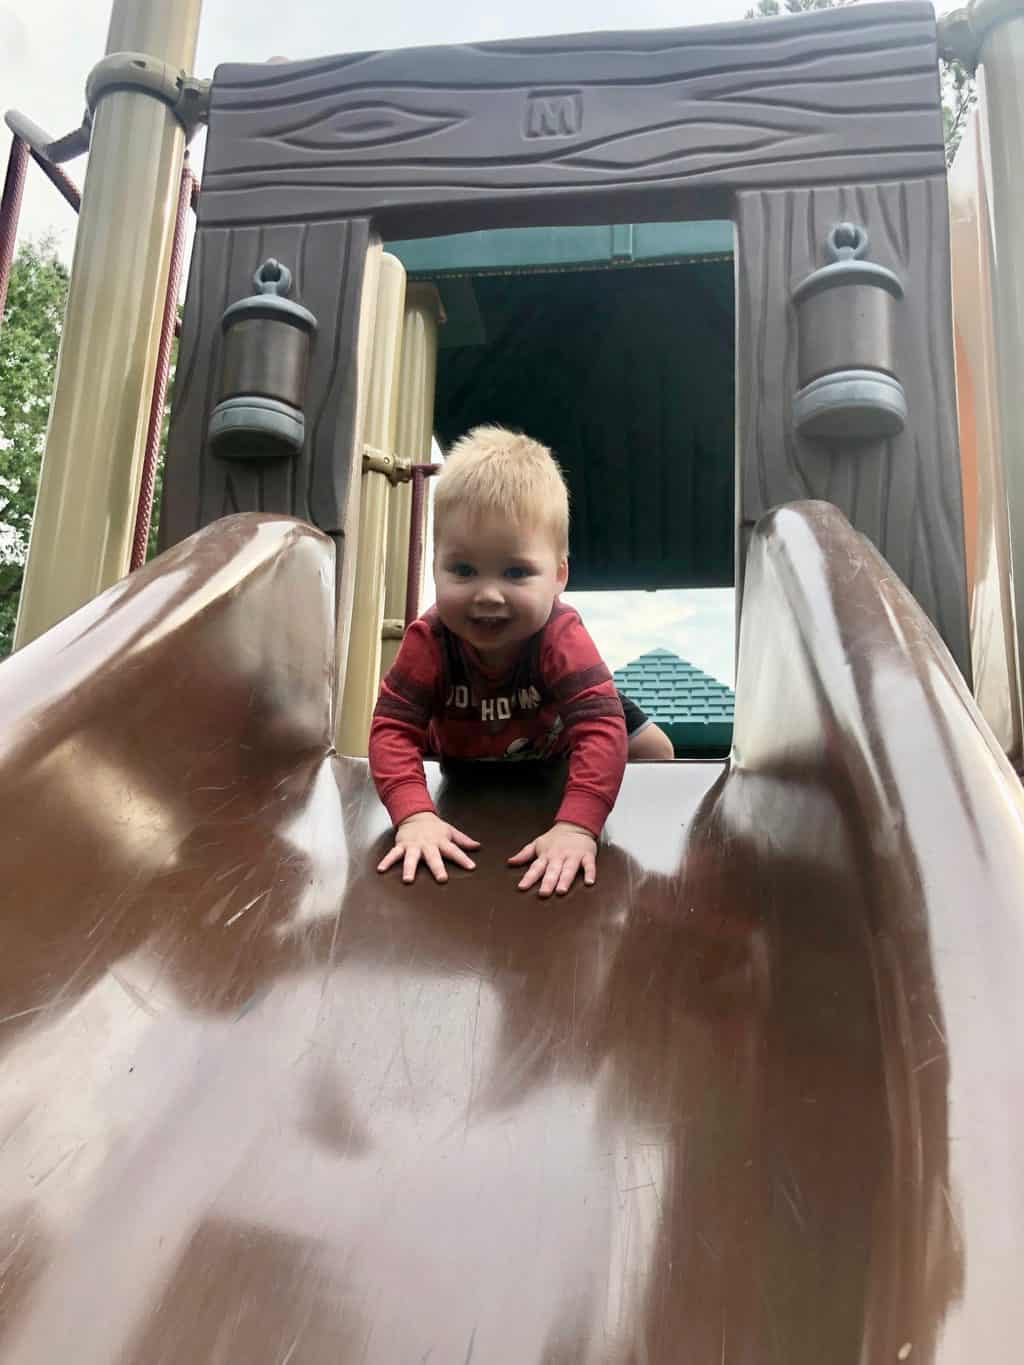 spear playing on playground